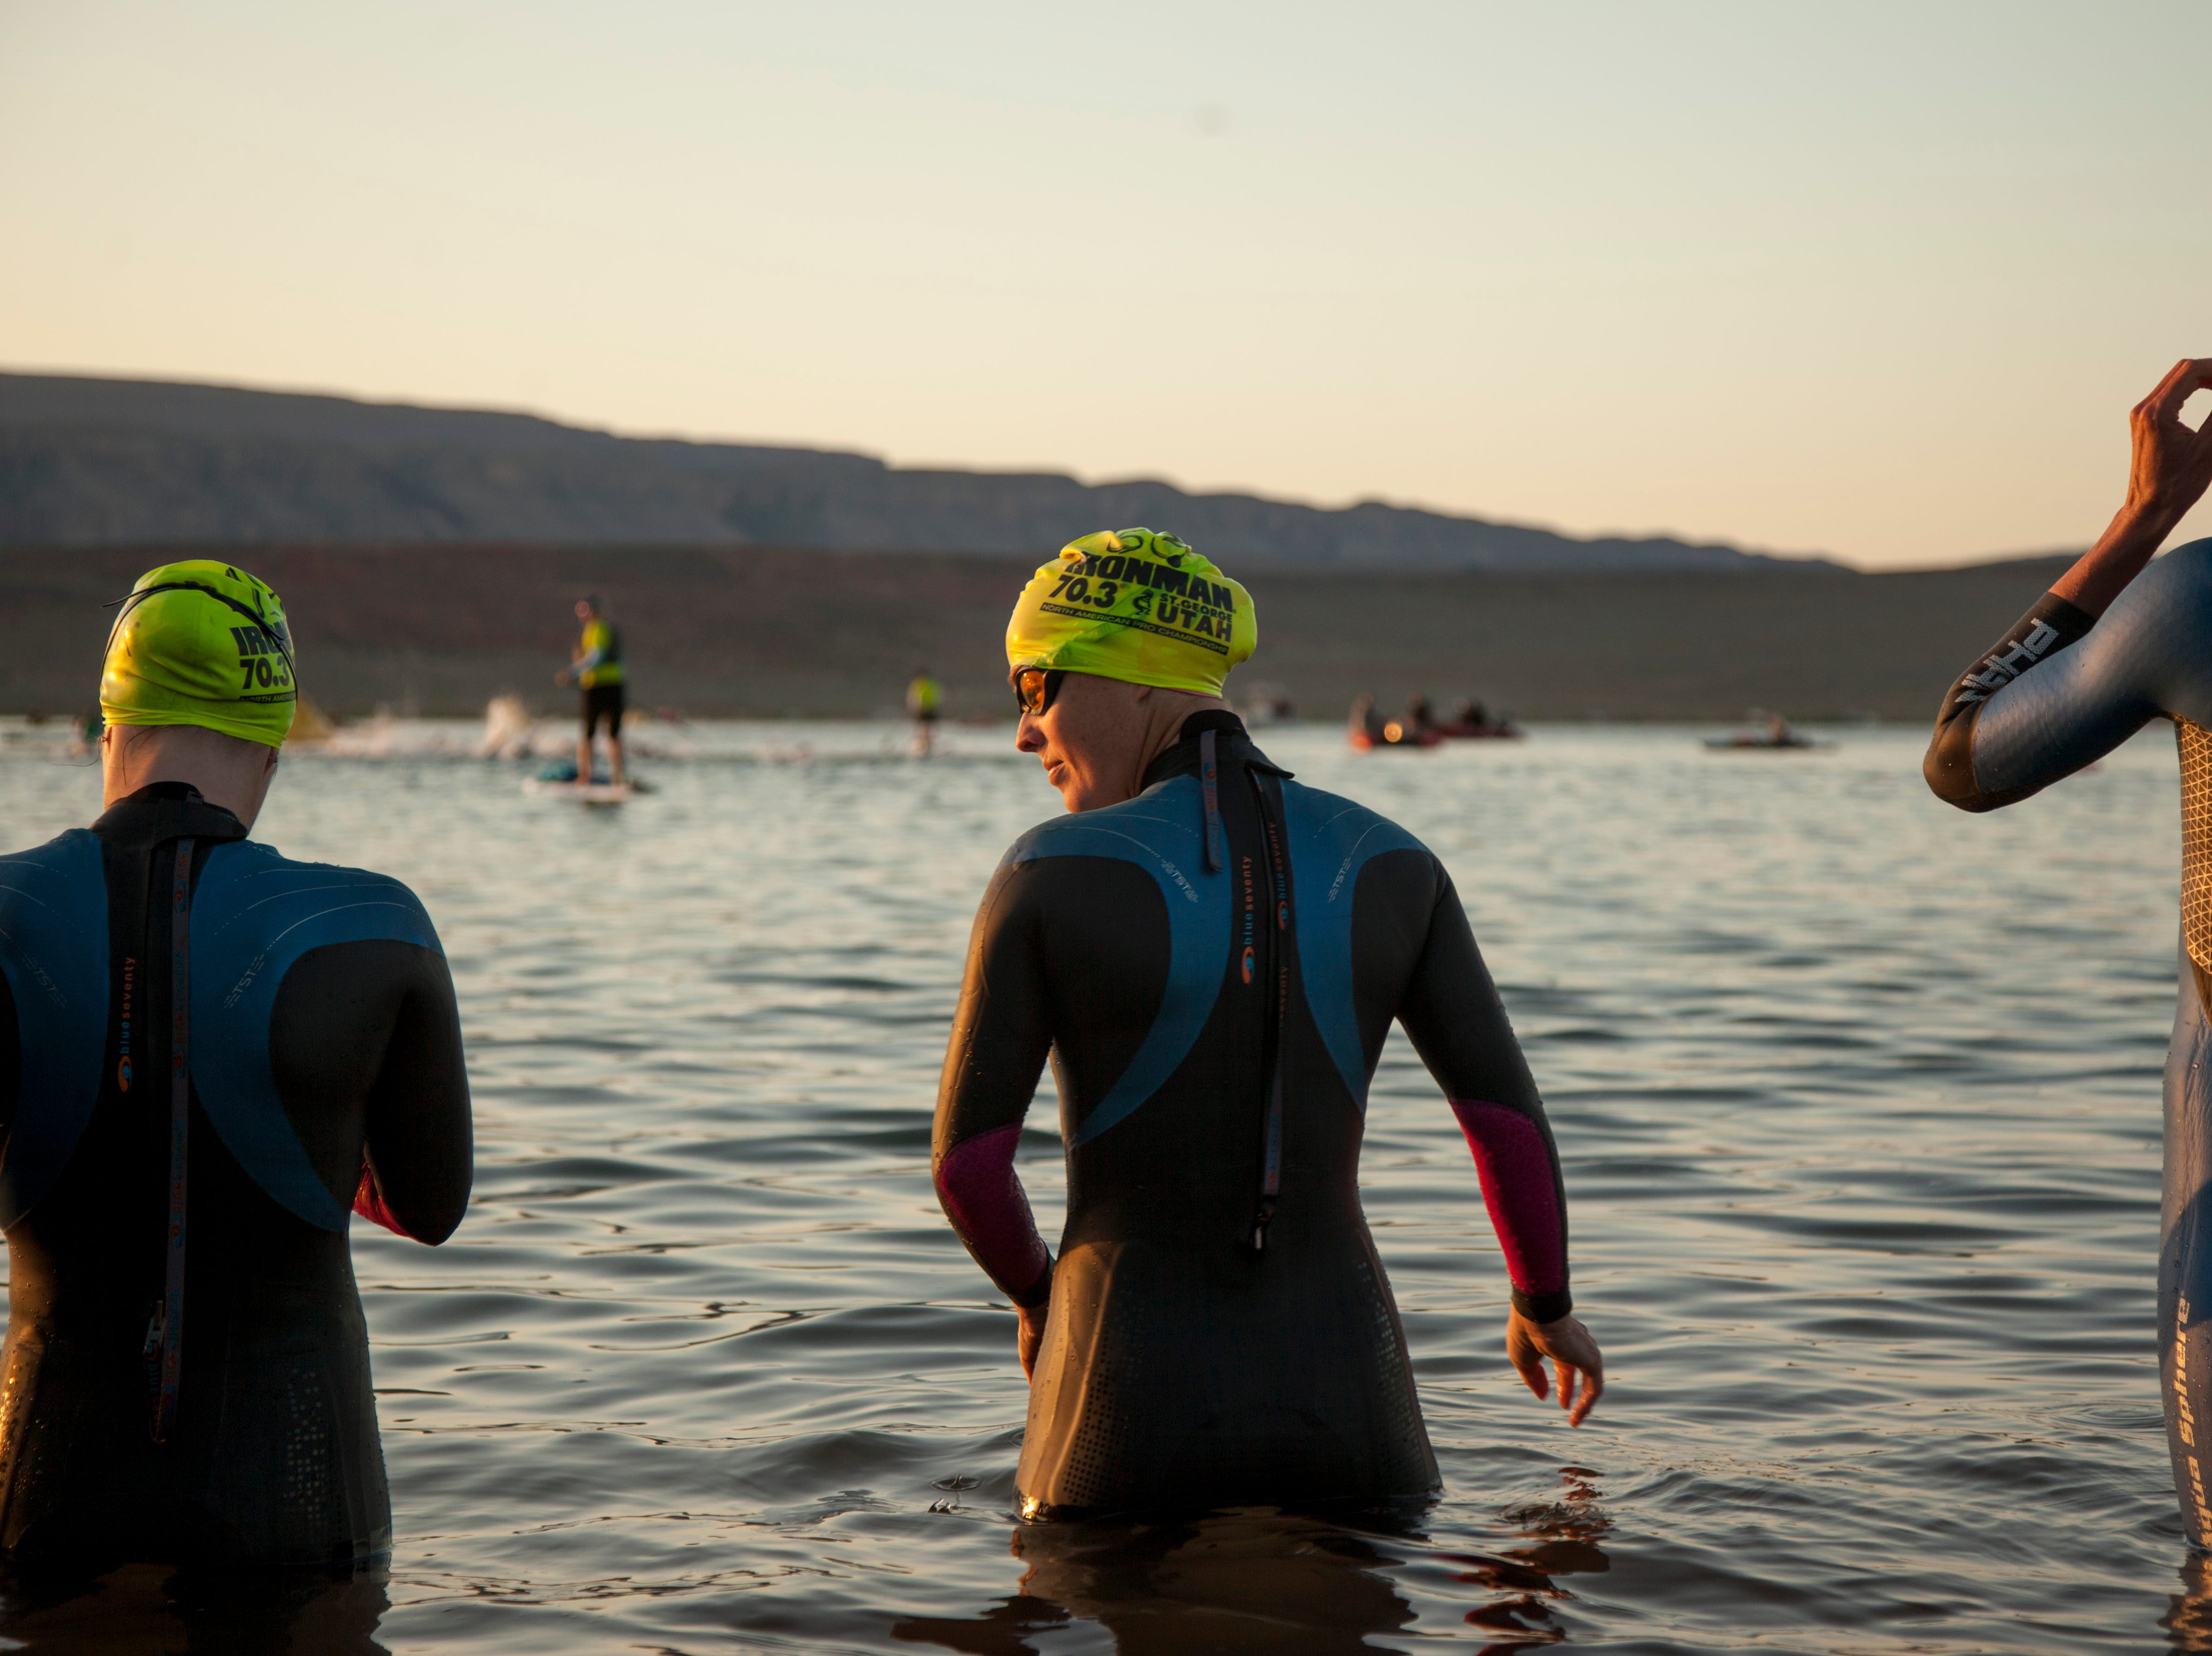 Athletes from around the world compete in the St. George Ironman Saturday, May 4, 2019.